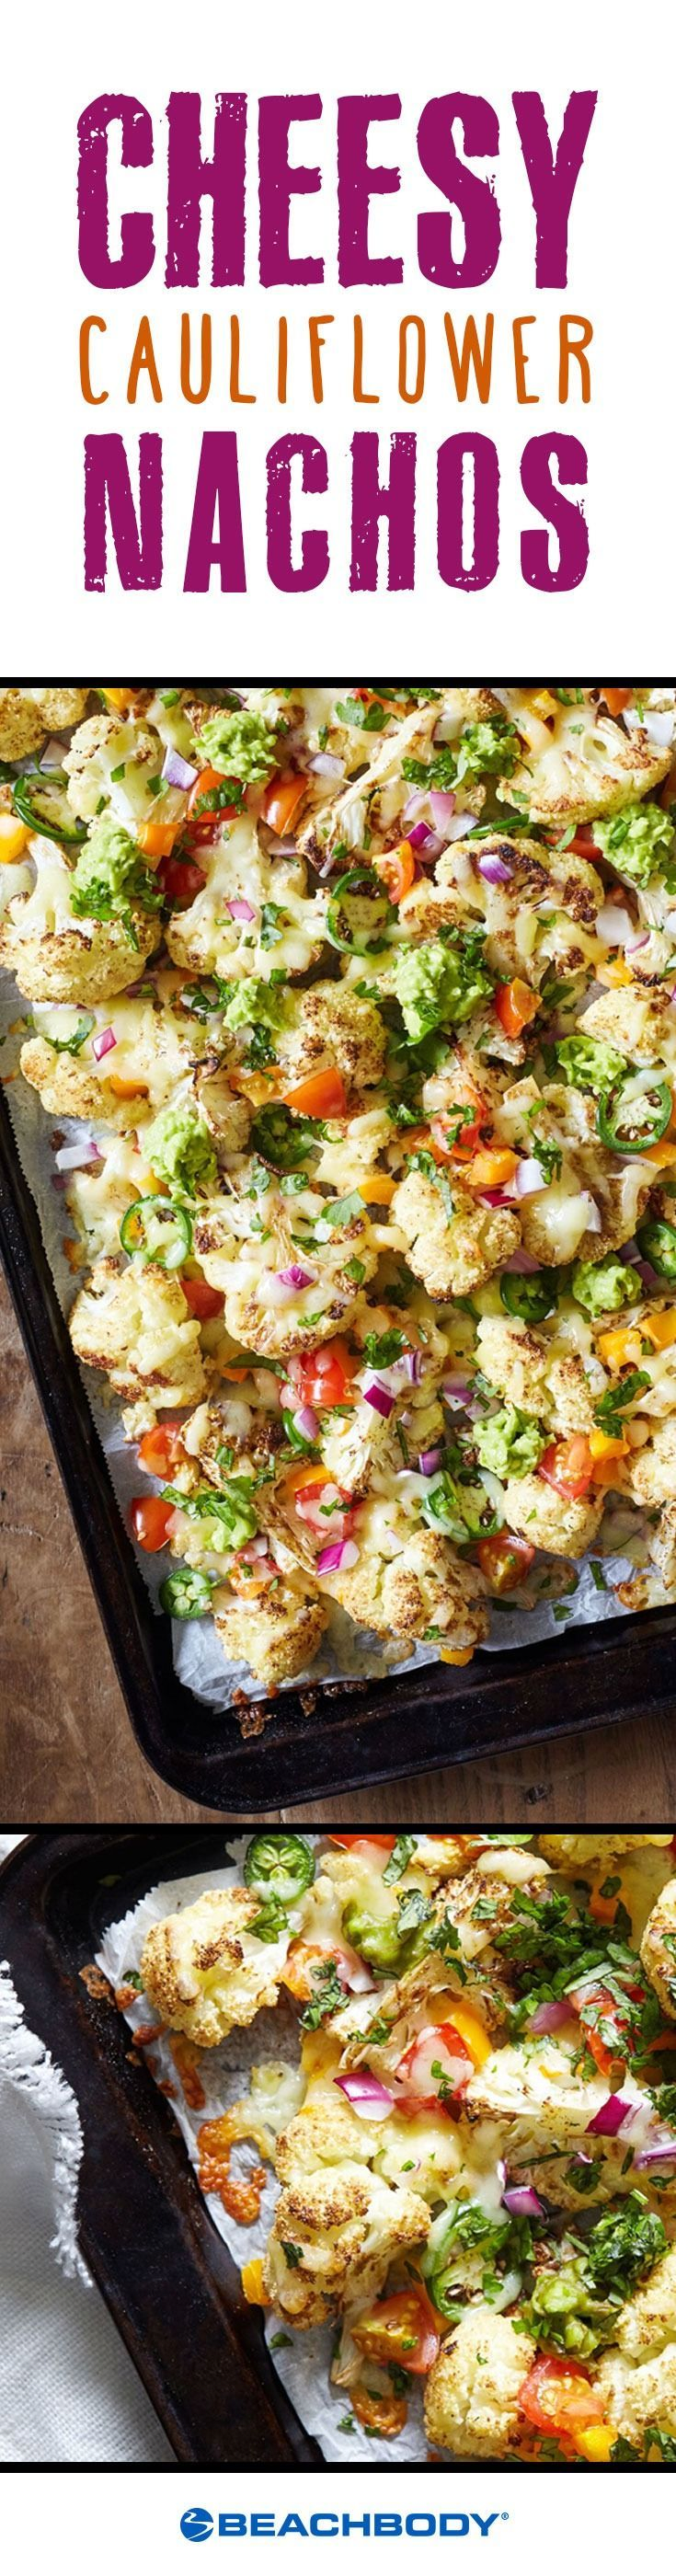 This fun cauliflower recipe is a great way to indulge in your nacho cravings, without heaps of unnecessary salt and fat. Be prepared for this dish to disappear within minutes! // recipes // healthy // appetizers // snacks // lunches // cheesy // vegetarian // kid friendly // mexican food // 45 minutes Beachbody // http://BeachbodyBlog.com